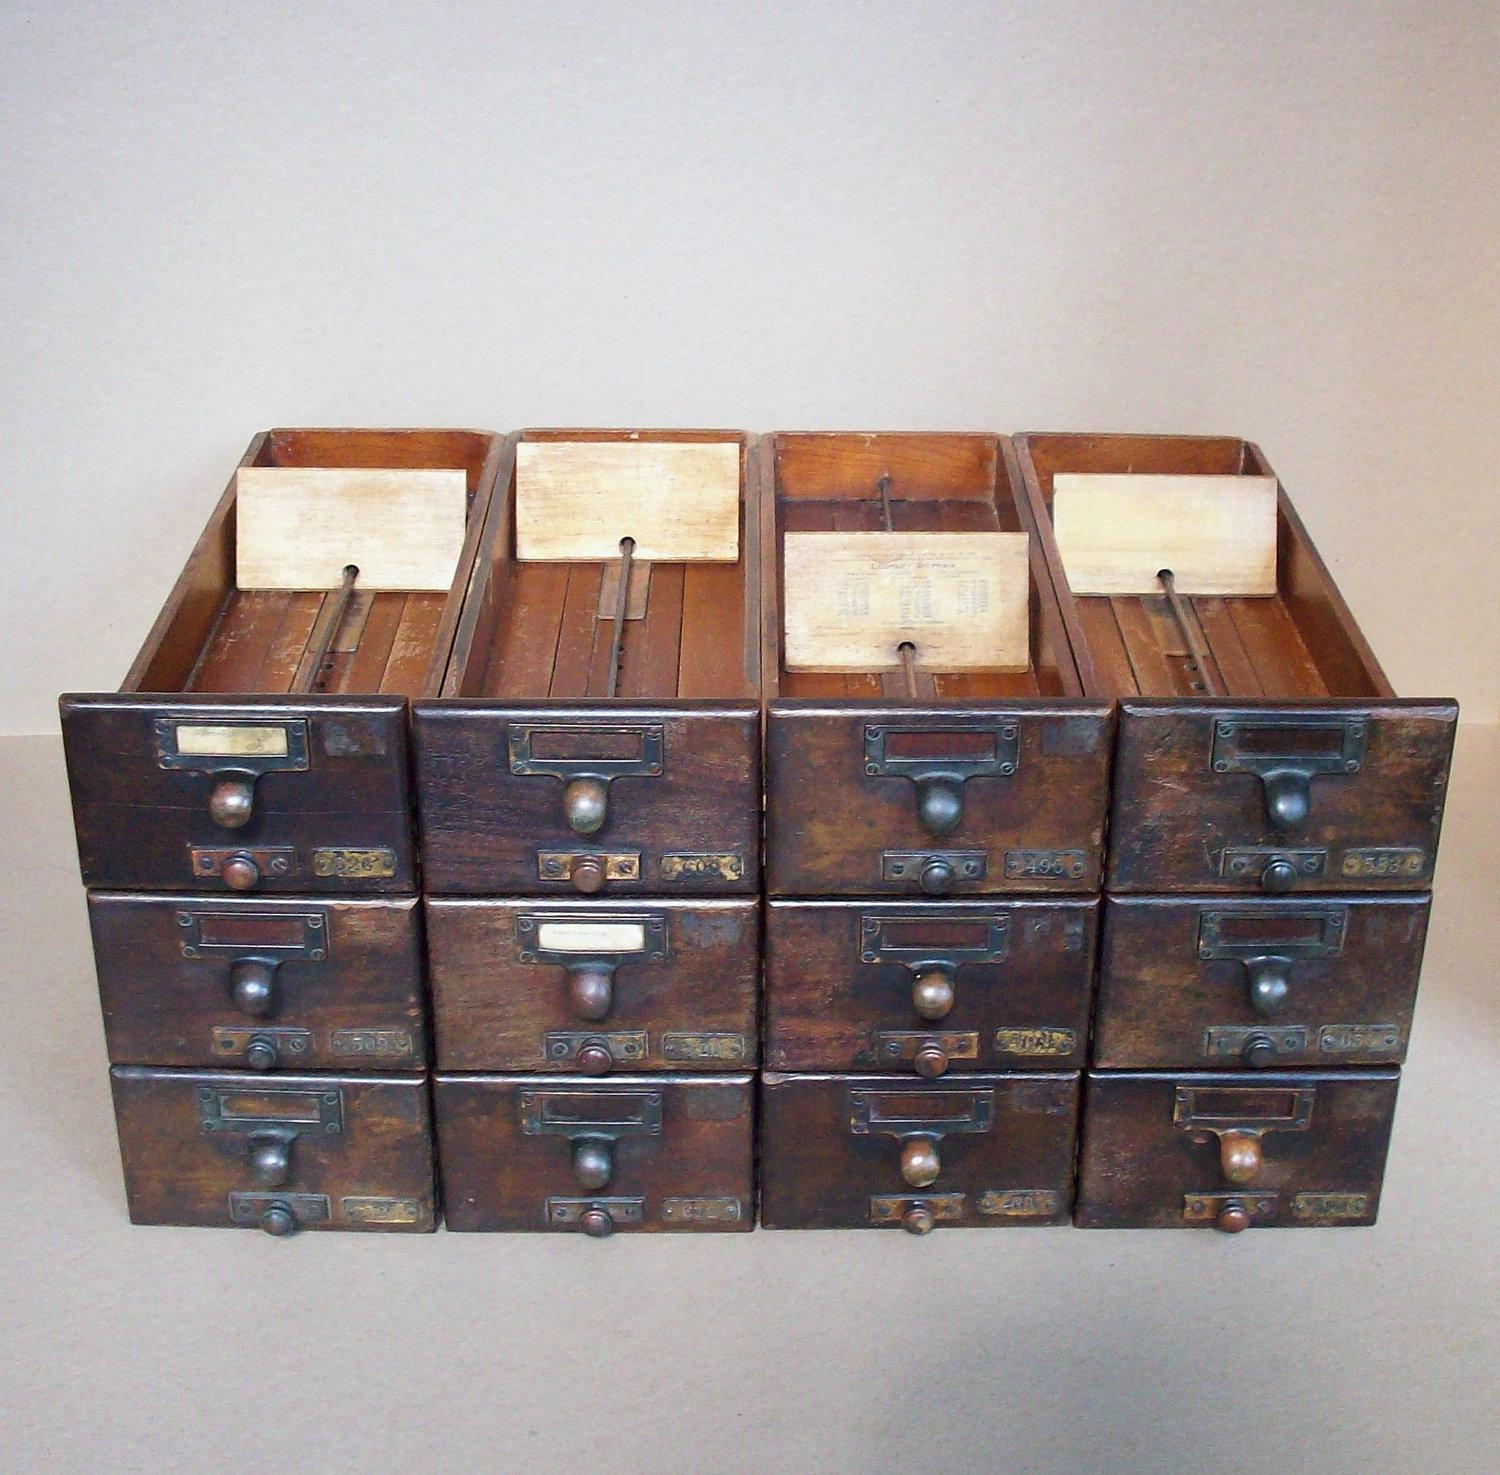 Vintage Library Card Catalogue Drawer with Label by urgestudio